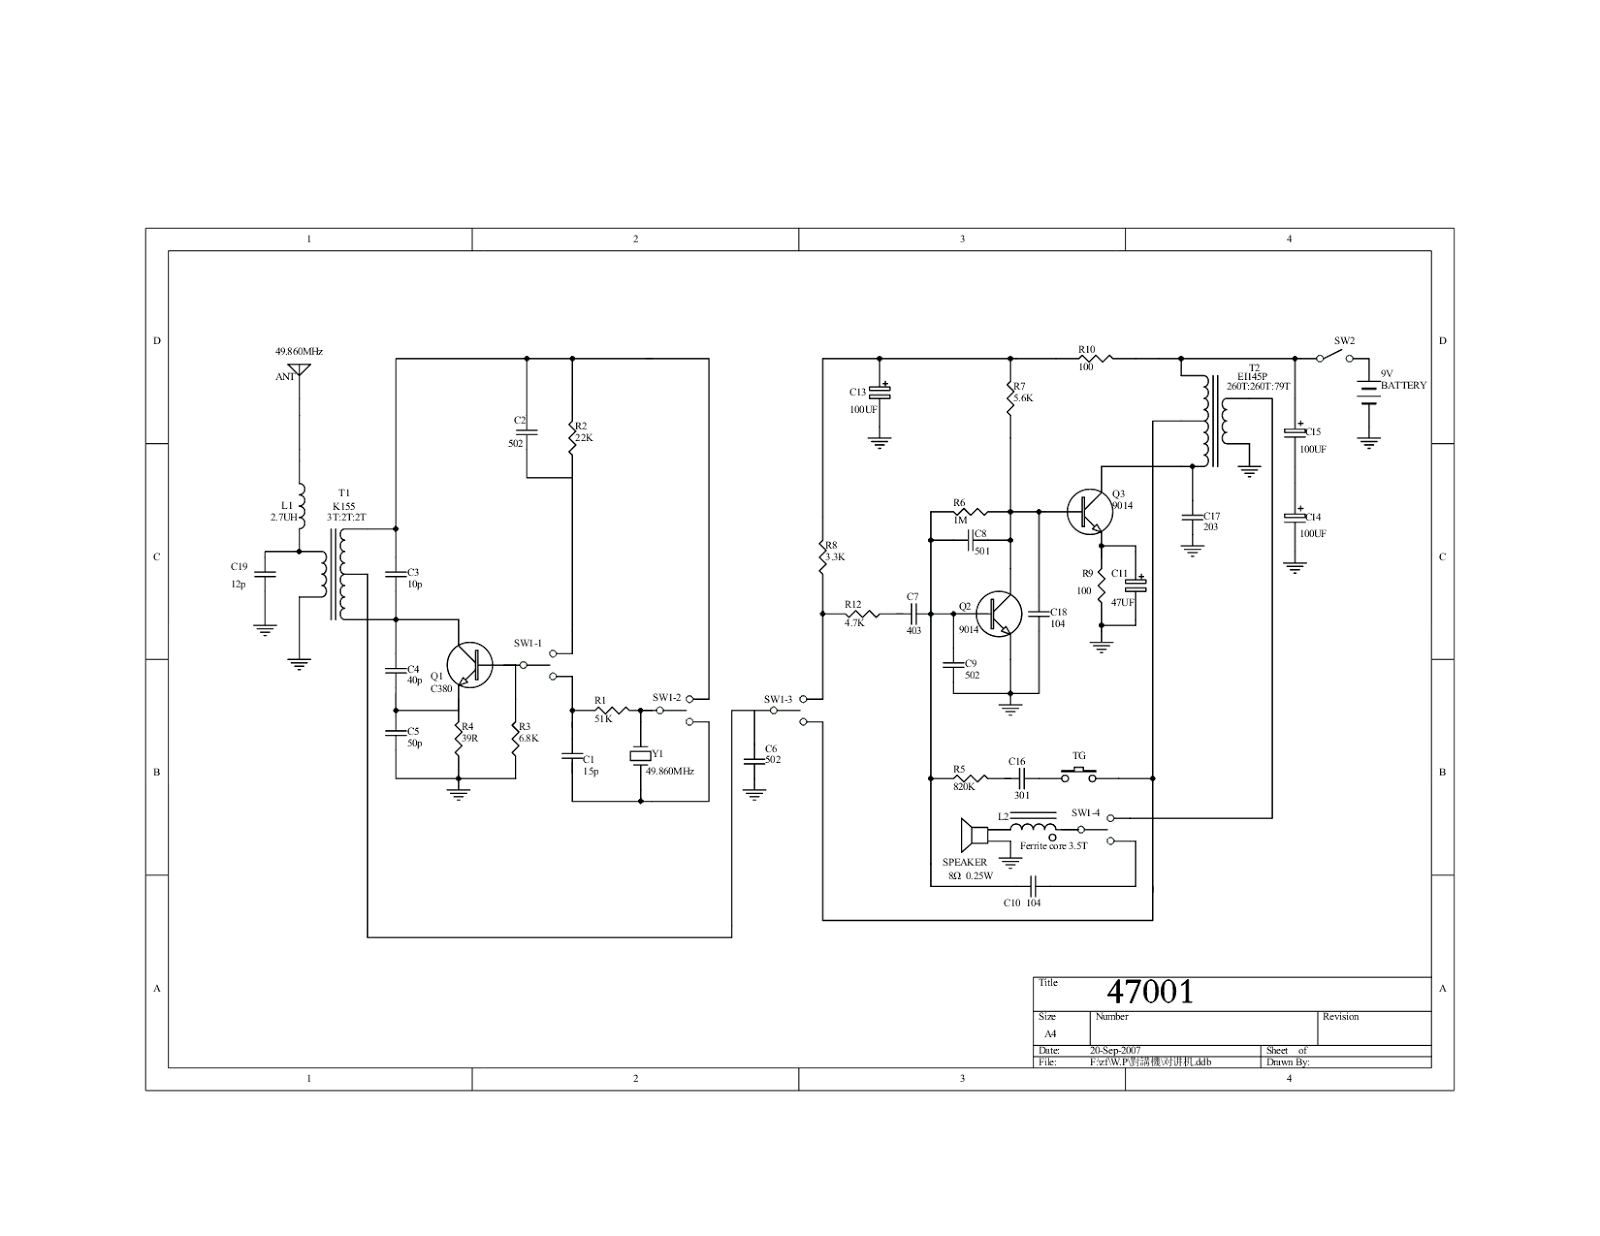 Simple walkie talkie circuit diagram easy to build simple simple walkie talkie circuit diagram ccuart